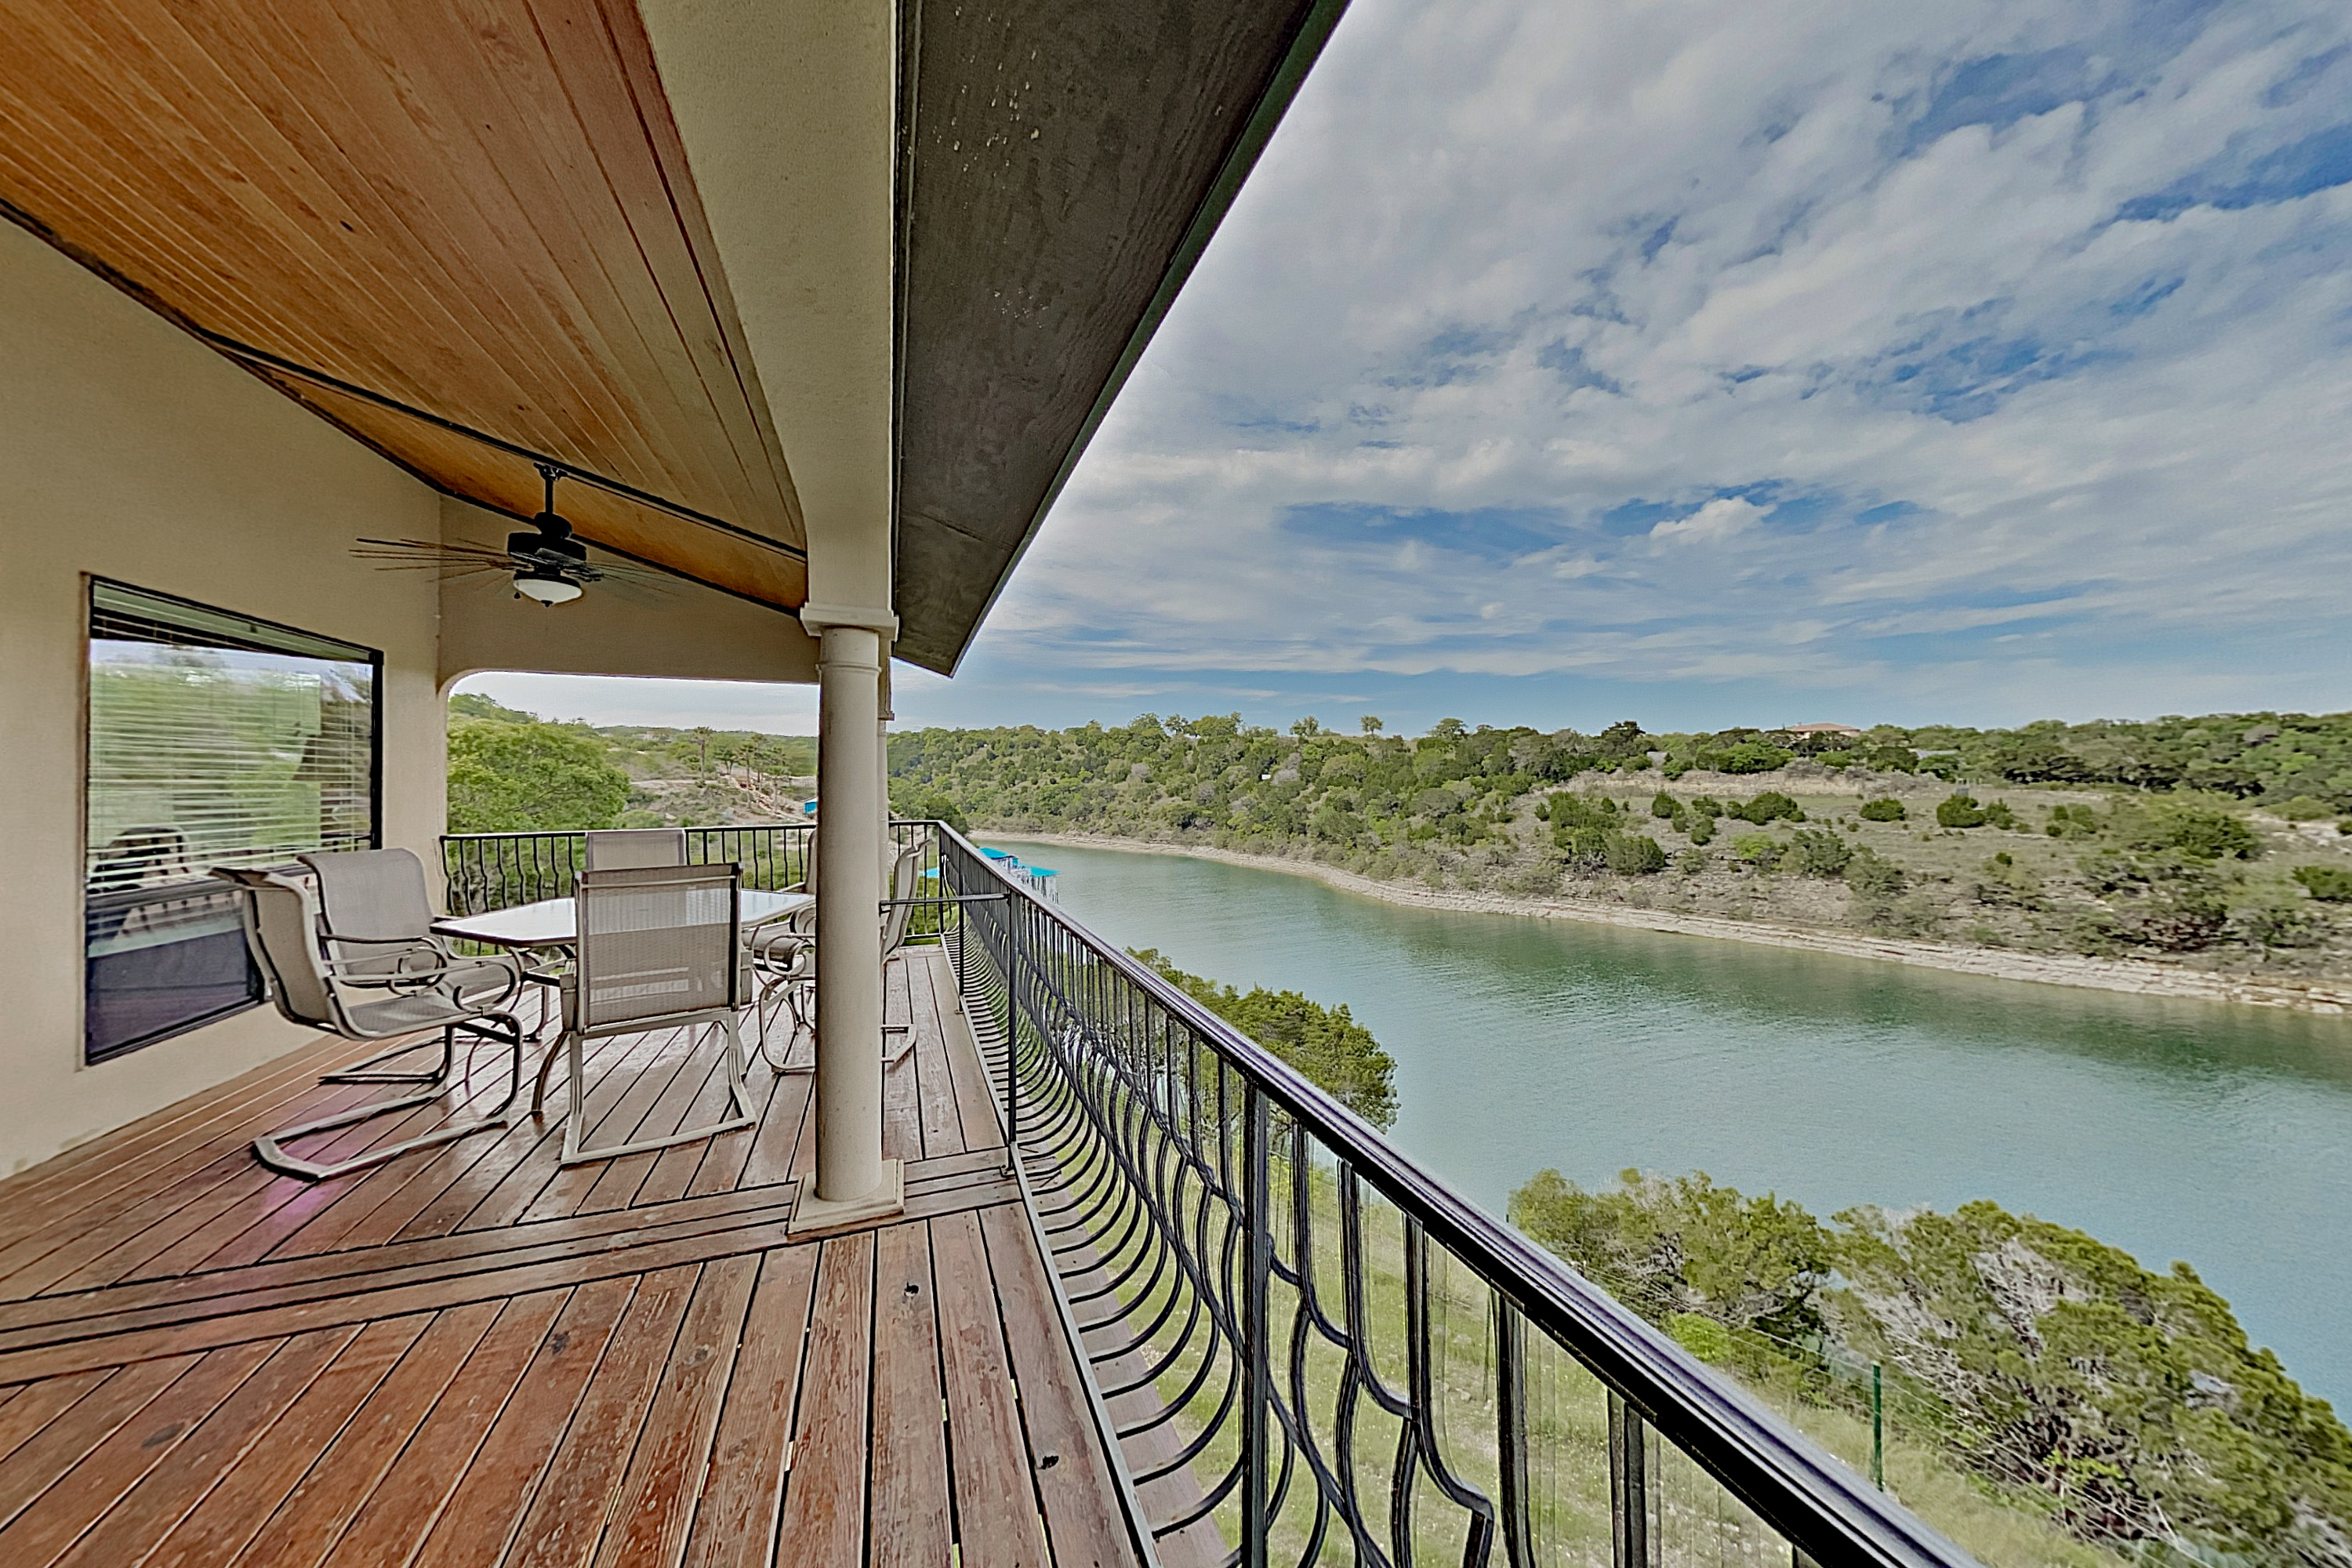 Lago Vista TX Vacation Rental Welcome to Lago